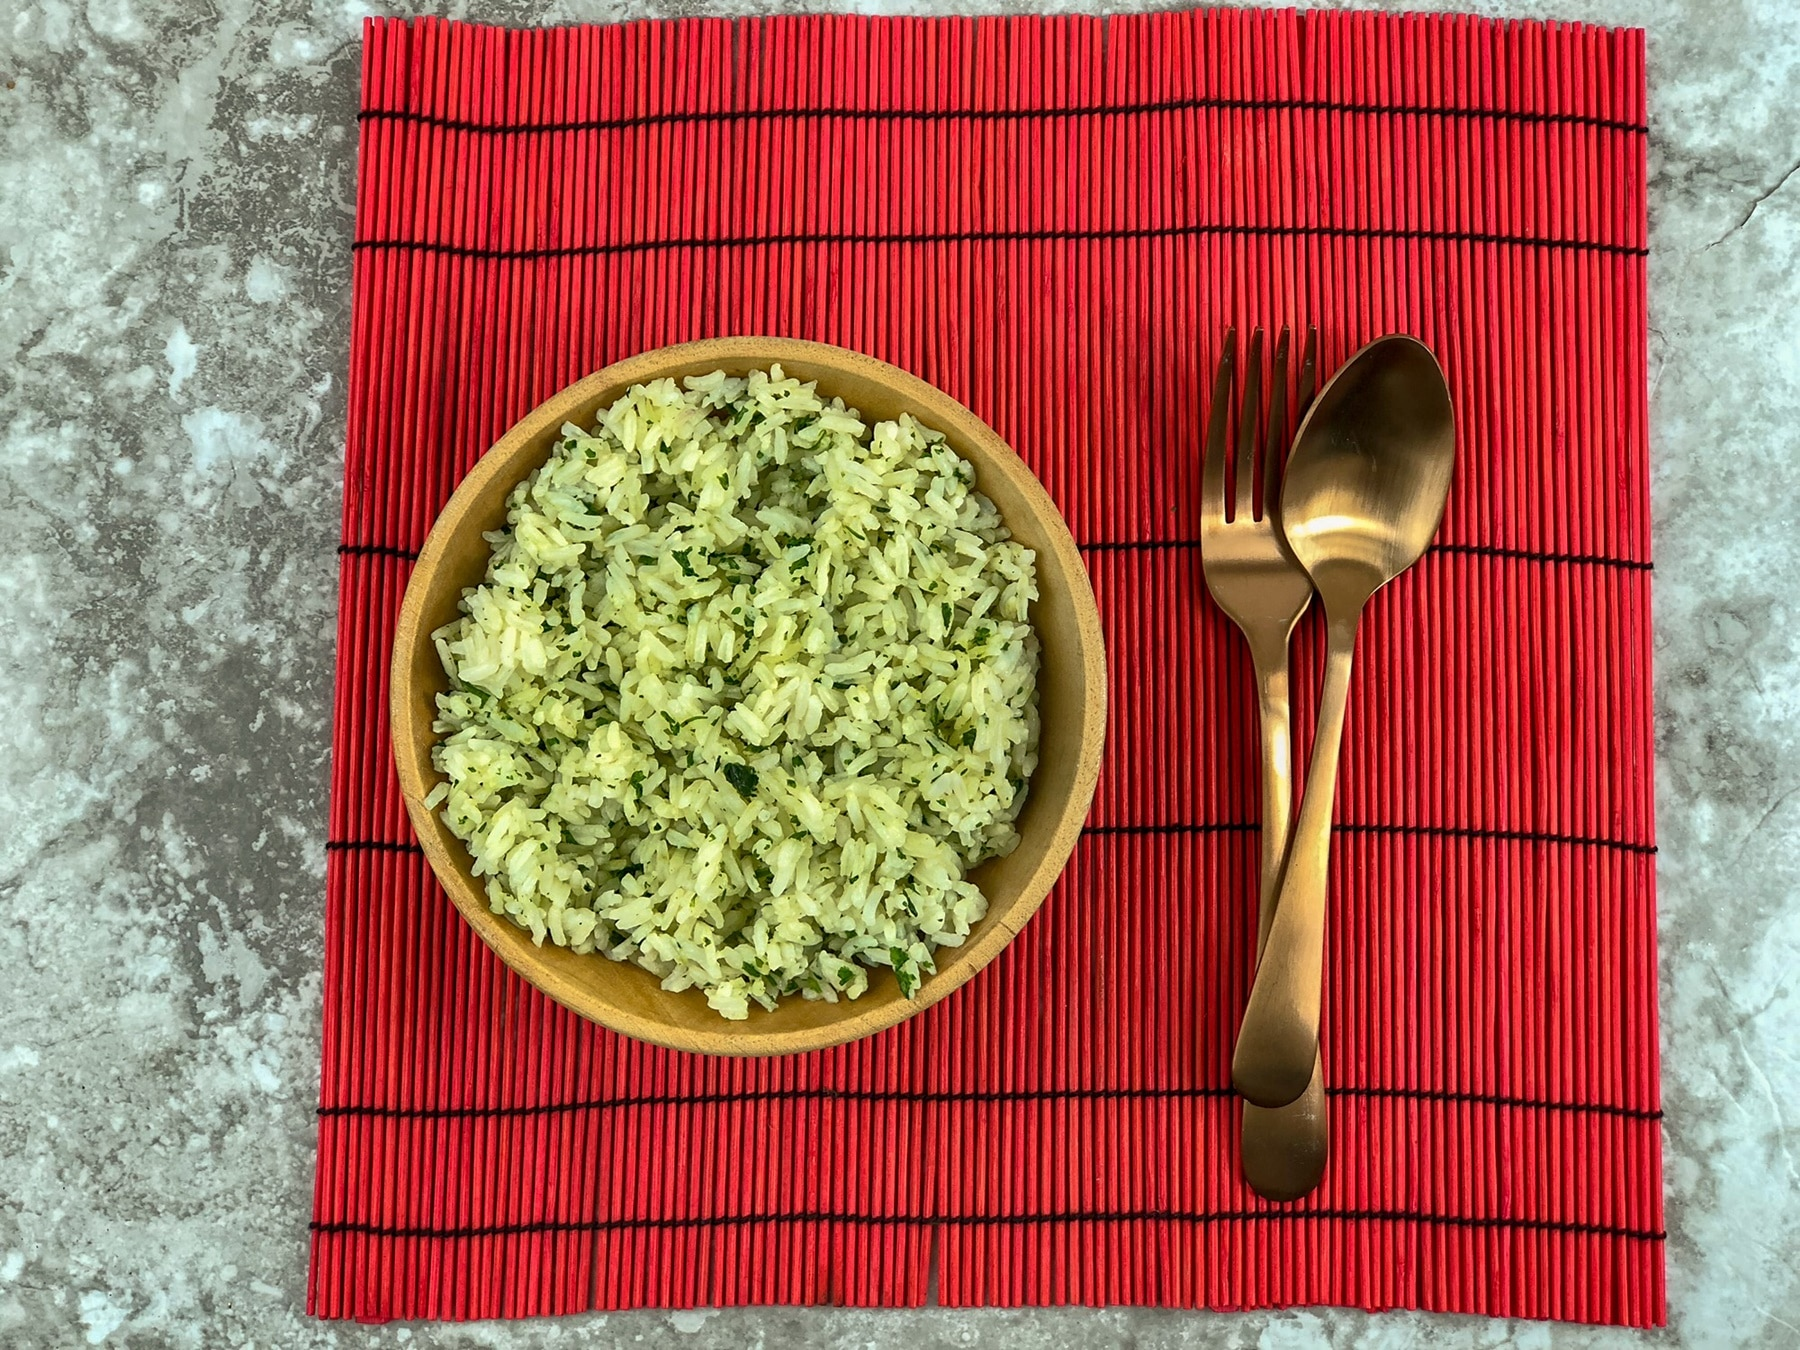 Cilantro Lime Rice On A Red Placemat.